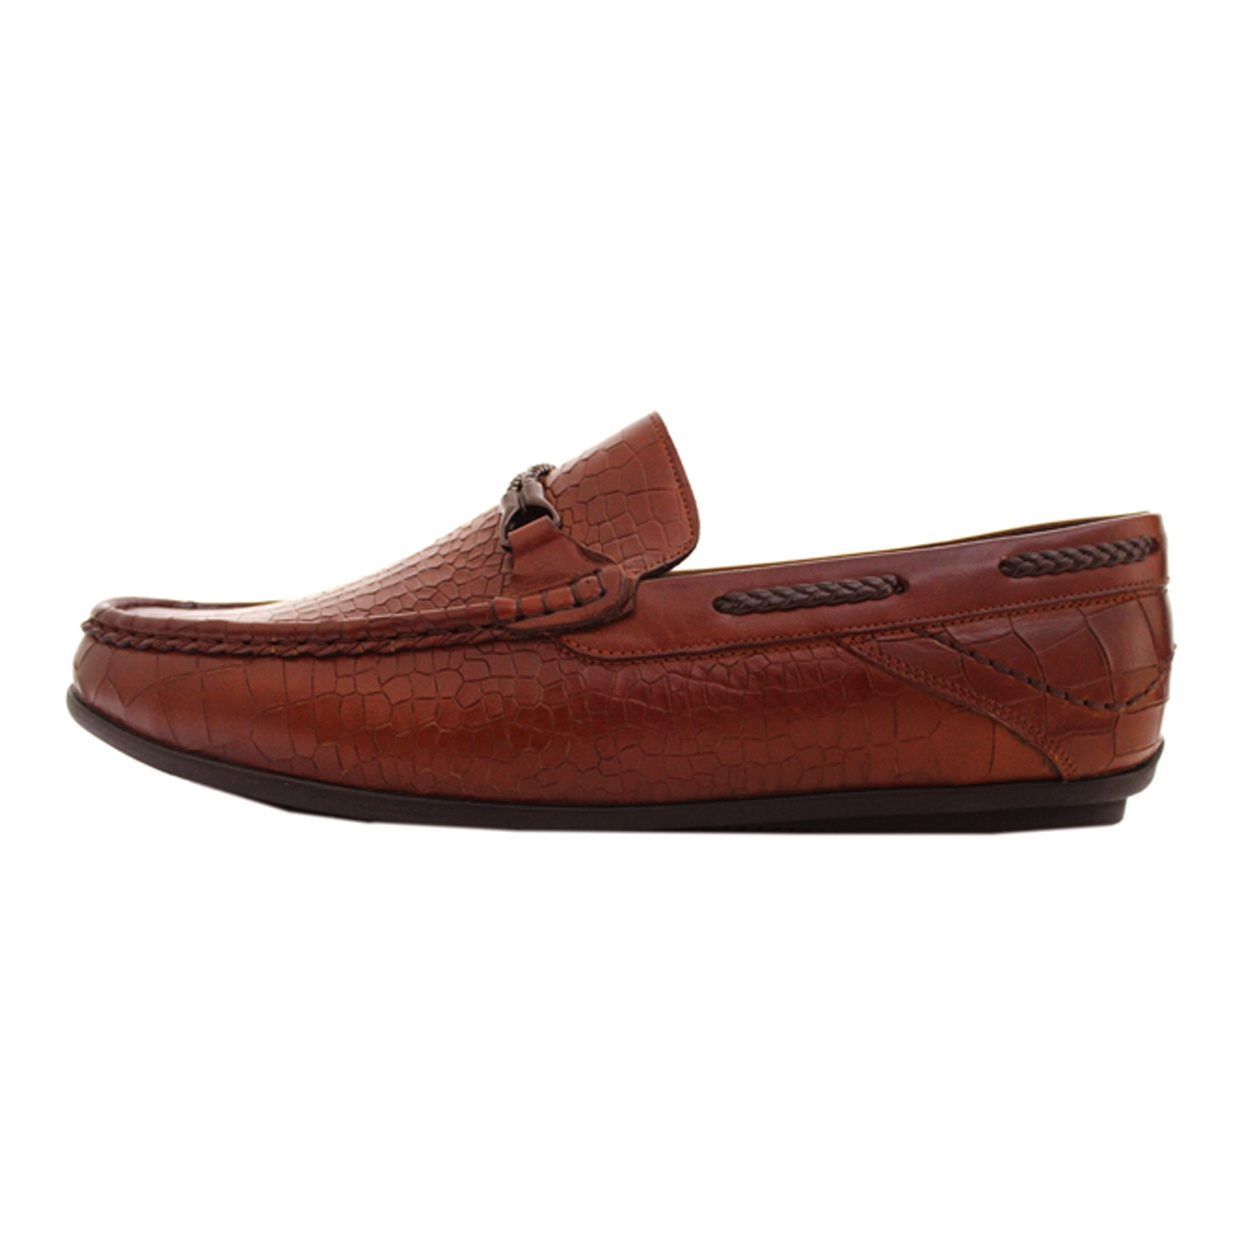 CHARMARA leather men's casual shoes , Code sh022